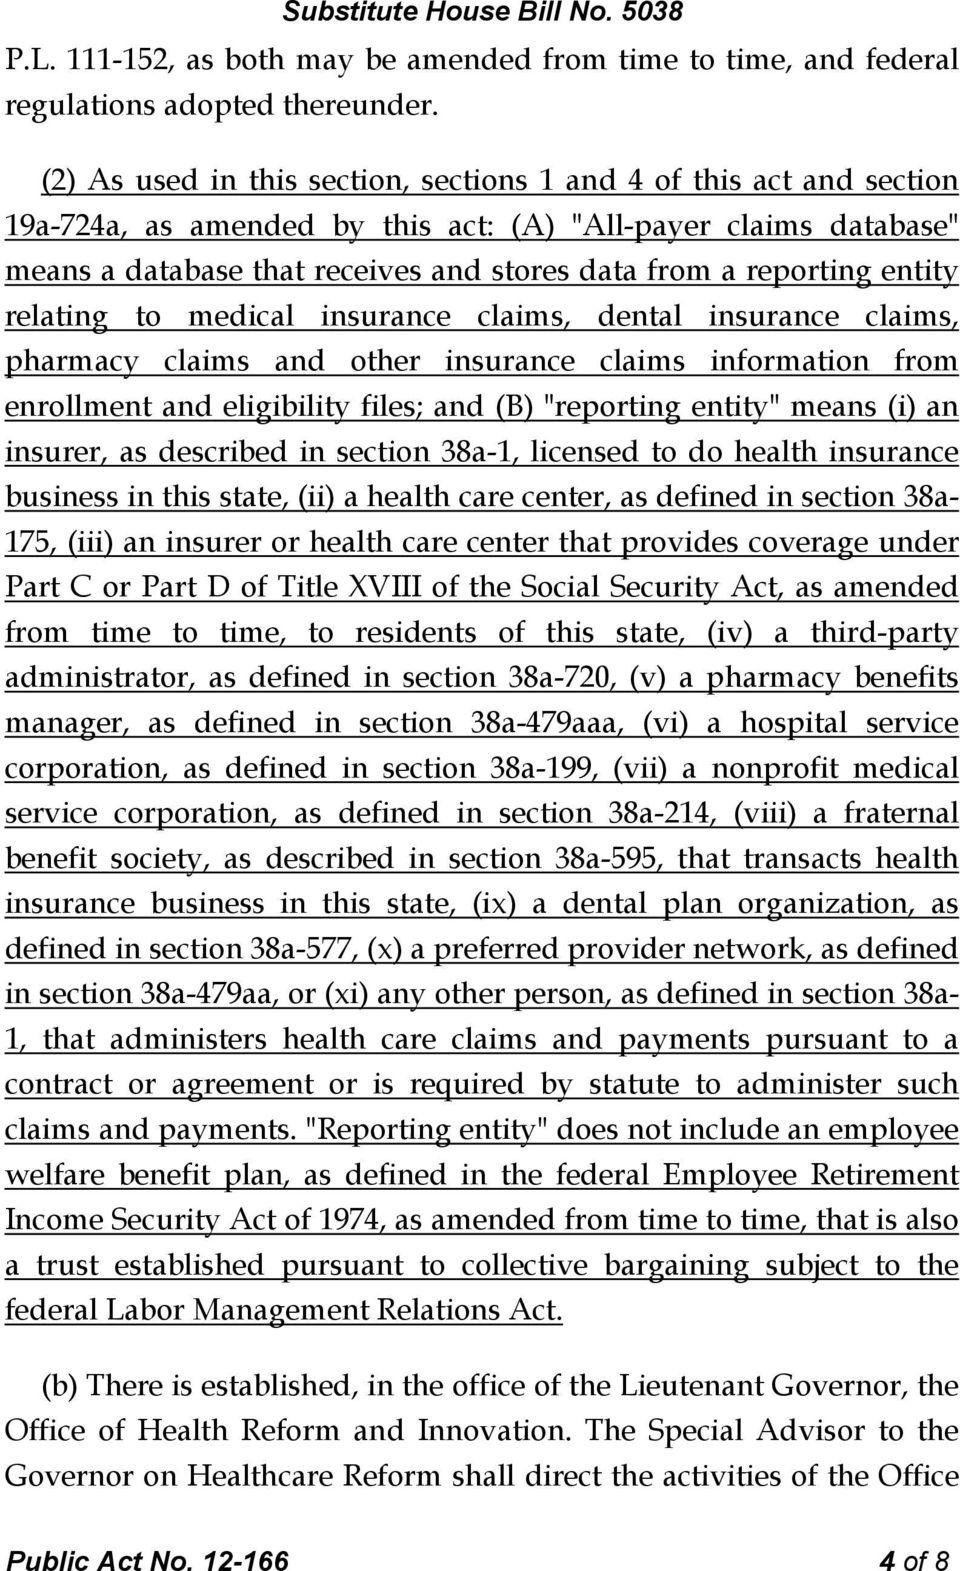 "entity relating to medical insurance claims, dental insurance claims, pharmacy claims and other insurance claims information from enrollment and eligibility files; and (B) ""reporting entity"" means"